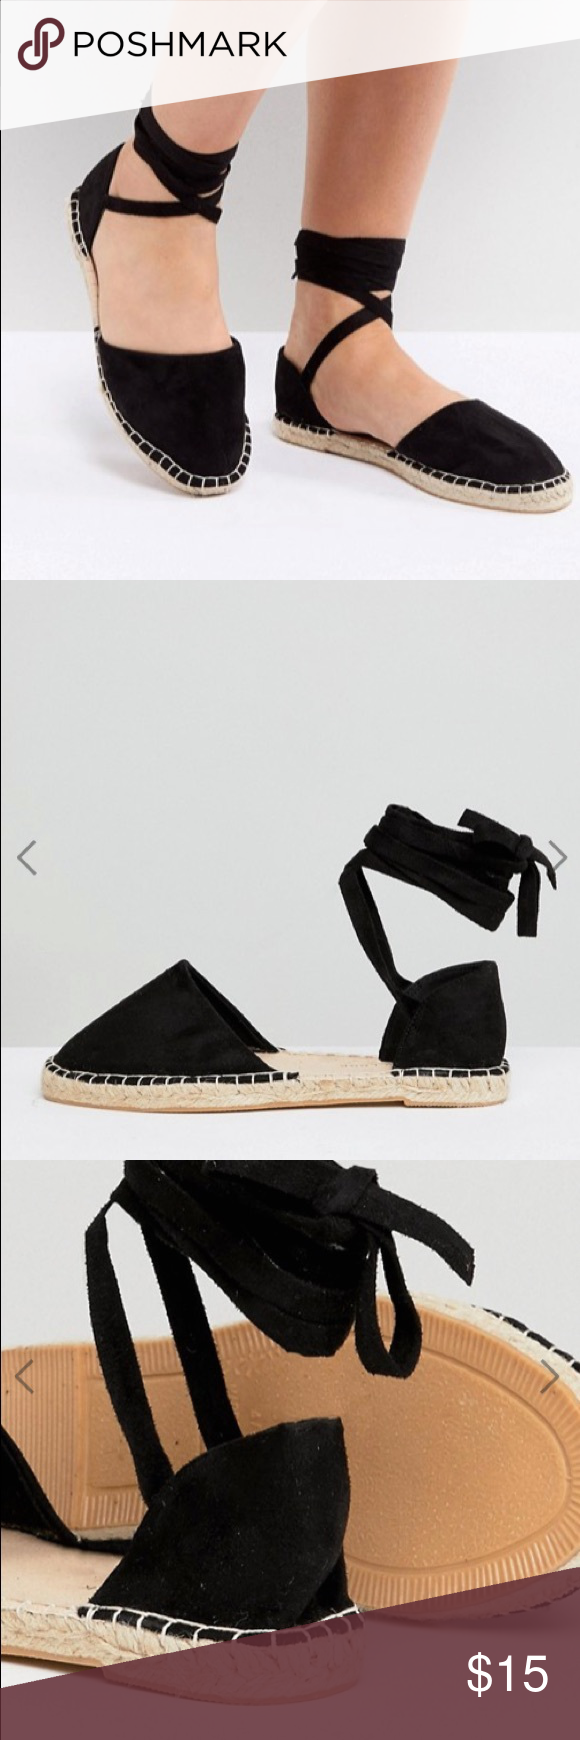 3e28304ab4d4 NWT Wide Fit Ankle Tie Flat Espadrille 10W - ASOS Never worn and still in  the bag these cute black espadrilles are a size 10 WIDE ASOS Shoes  Espadrilles